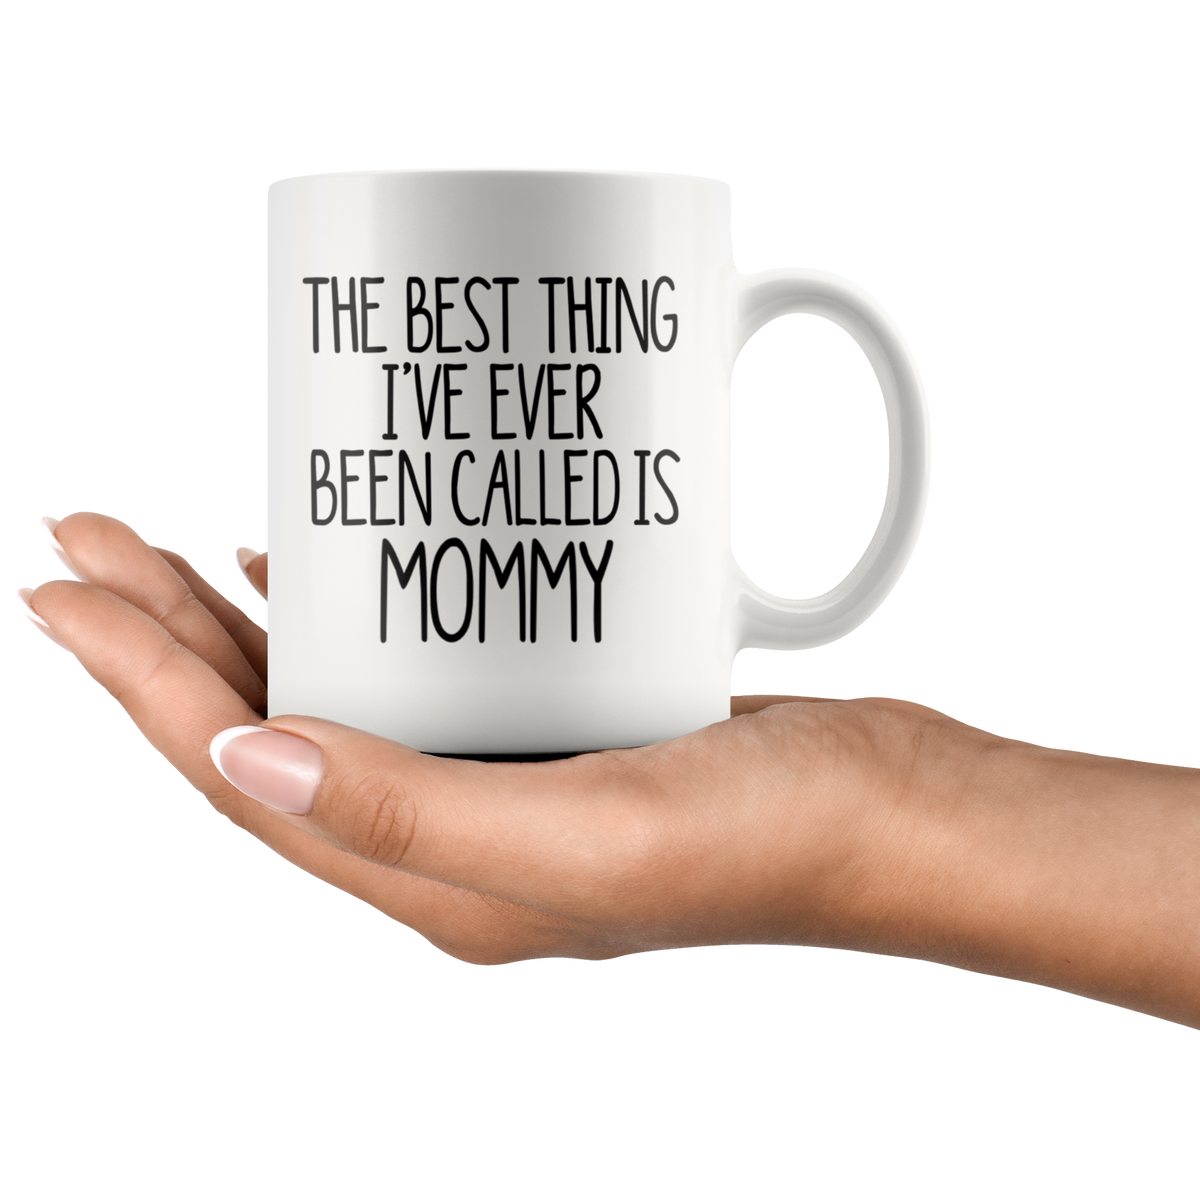 Mommy Gift Mug The Best Thing I've Ever Been Called is Mommy